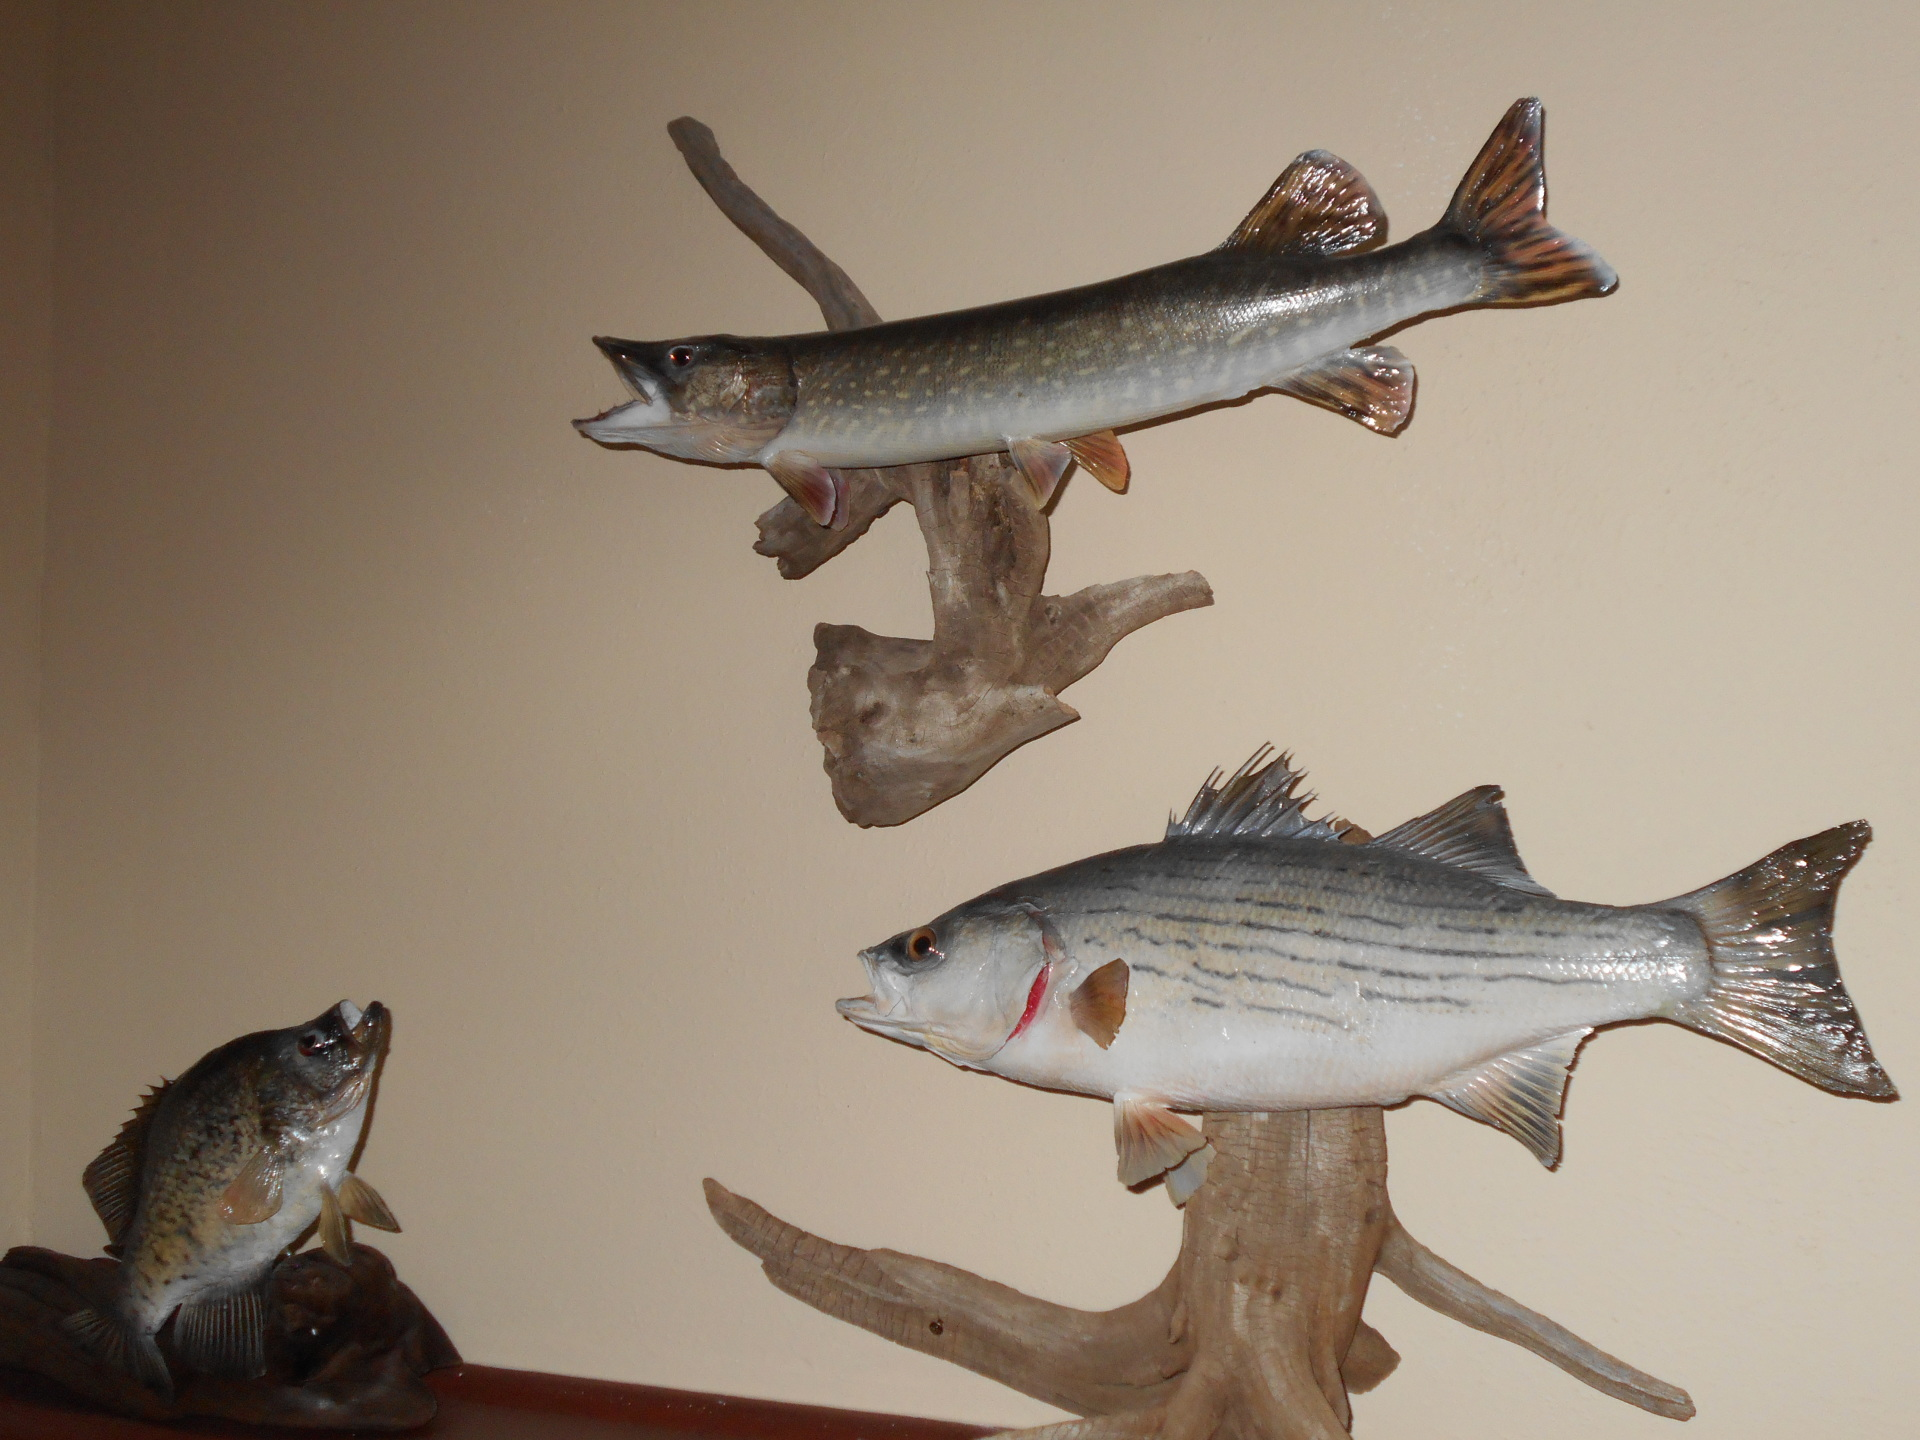 Golden Ridge Taxidermy, Taxidermy, Fish Replica, Fish, Taxidermist